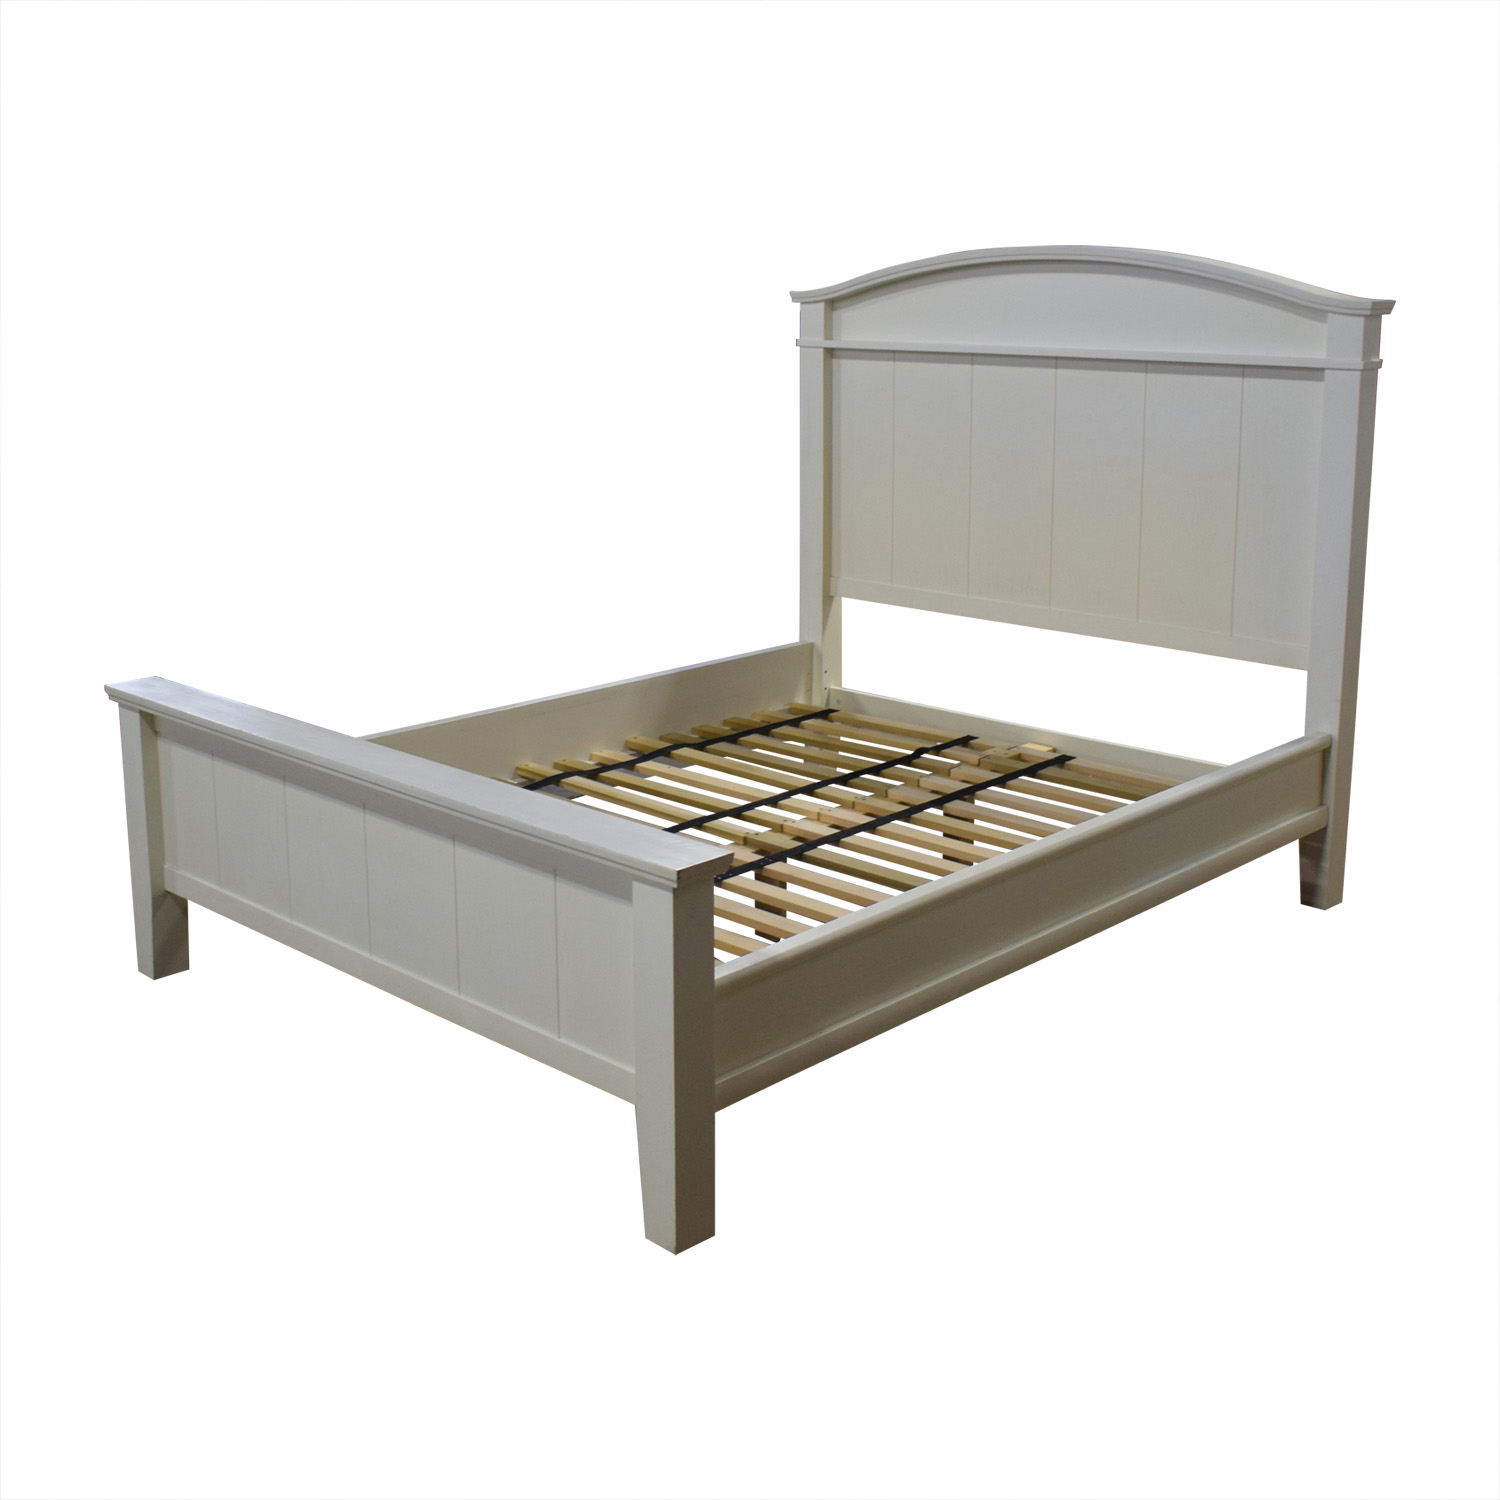 buy Pottery Barn Pottery Barn White Farmhouse Queen Platform Bed Frame online